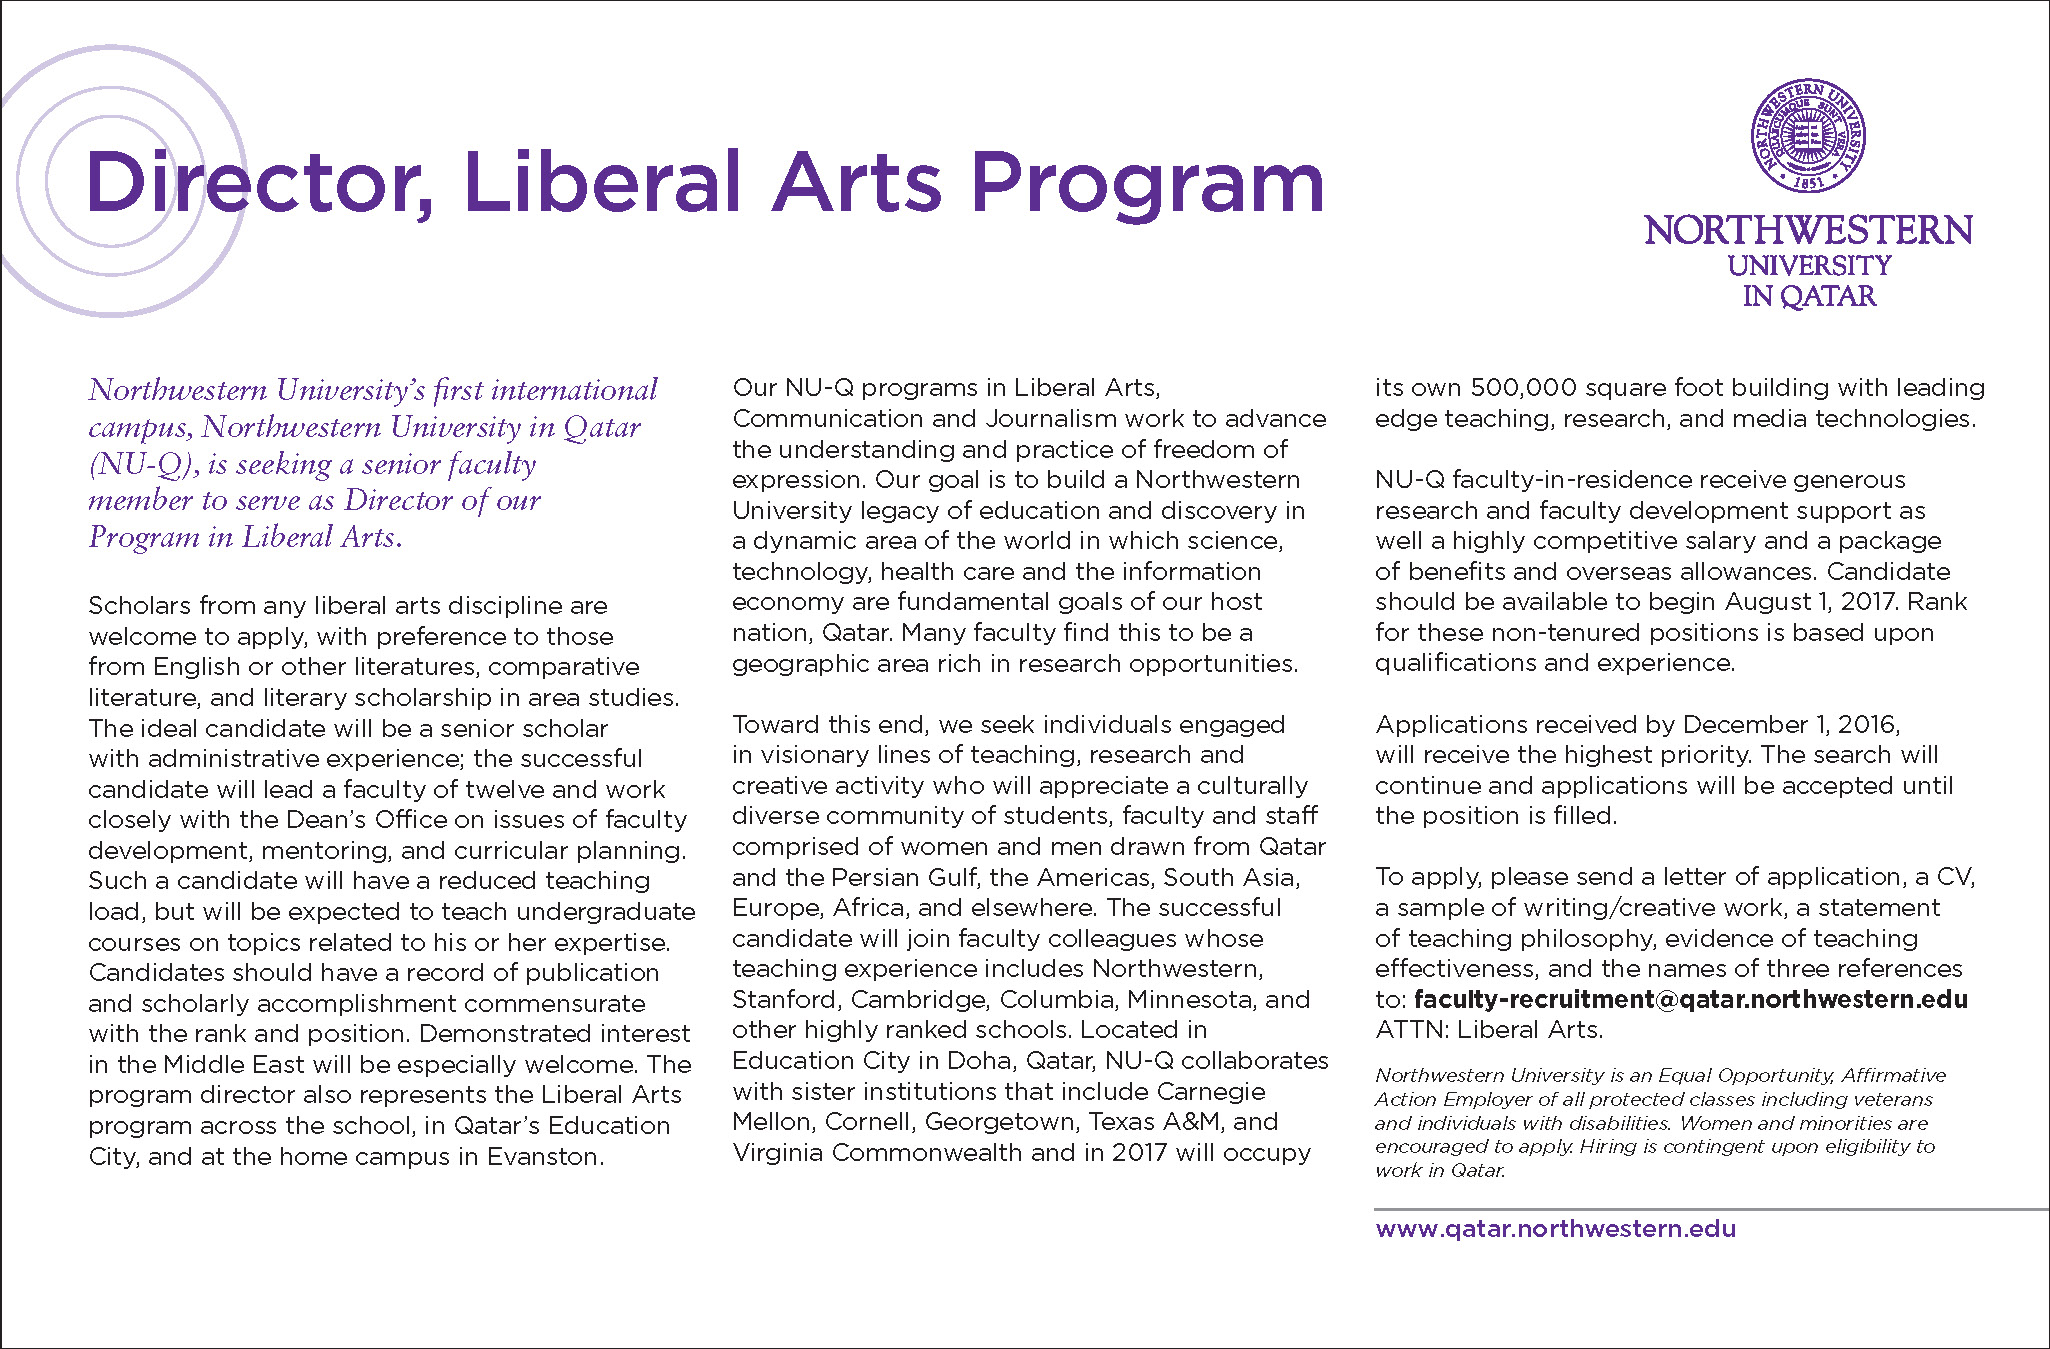 open positions northwestern university qatar association for che nu q dir liberal arts